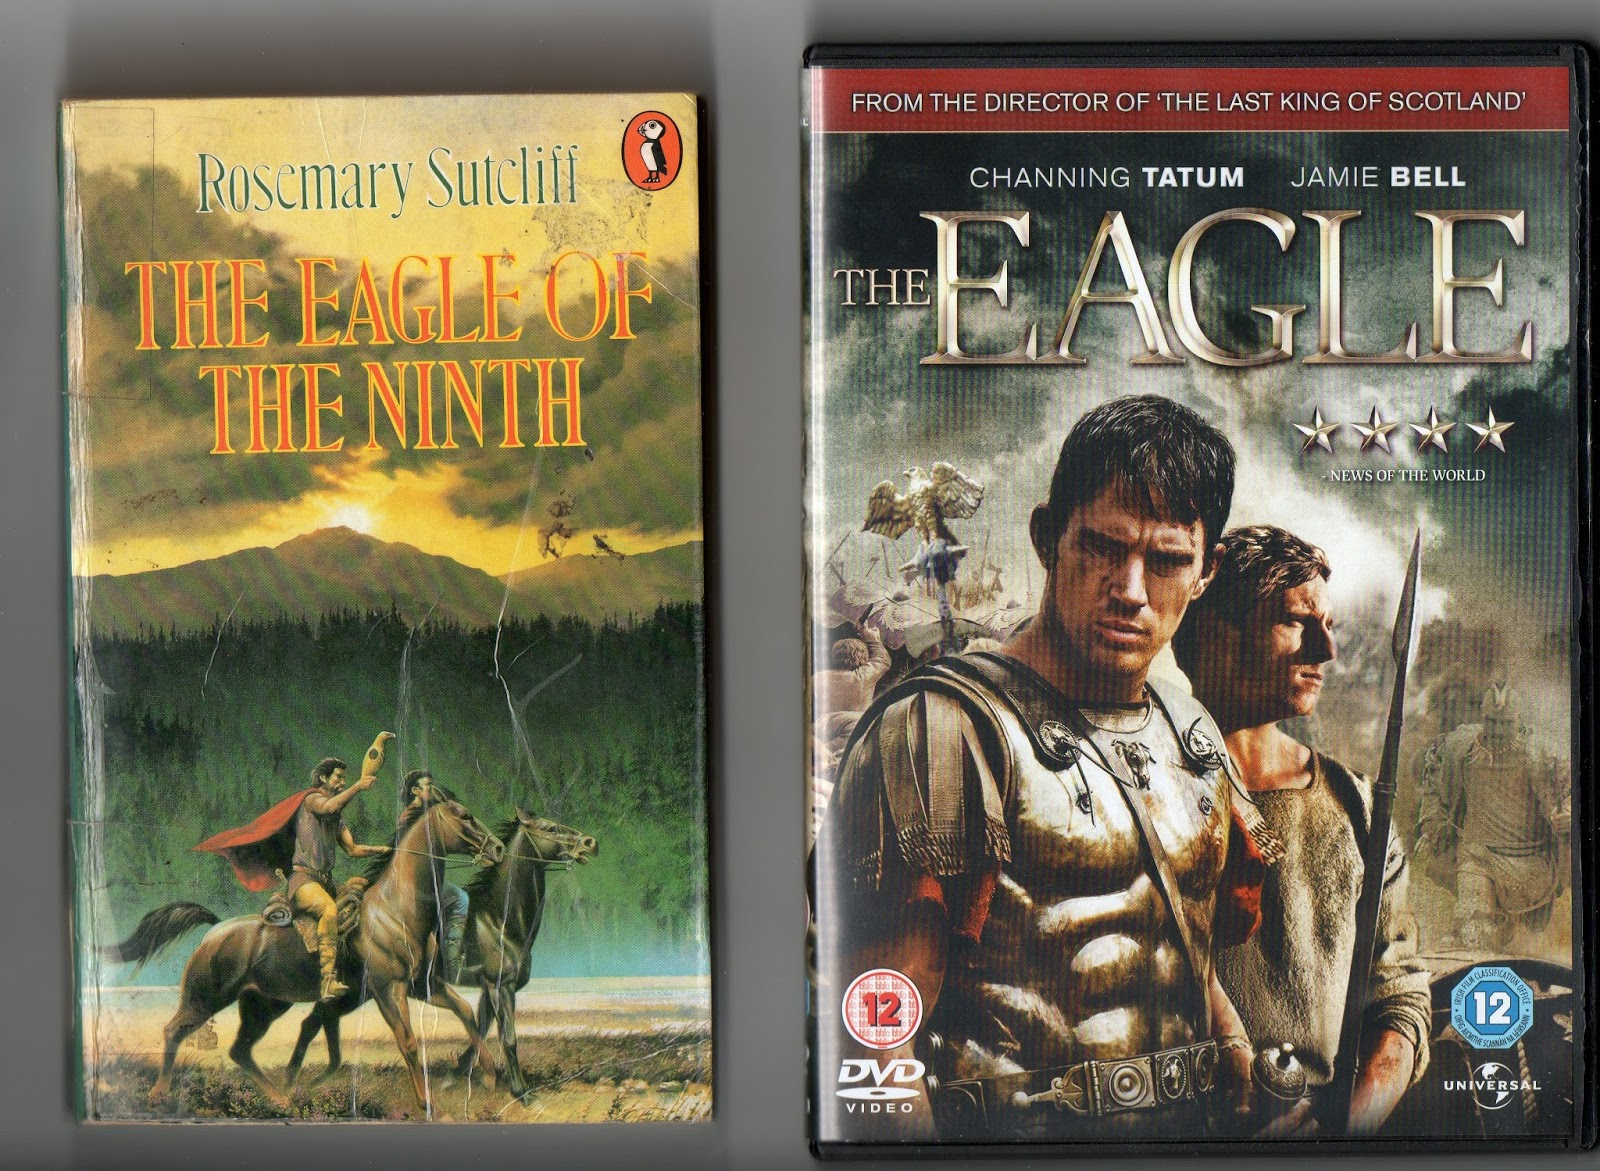 Eight Miles Higher: Book Into DVD: 'THE EAGLE OF THE NINTH' by ...